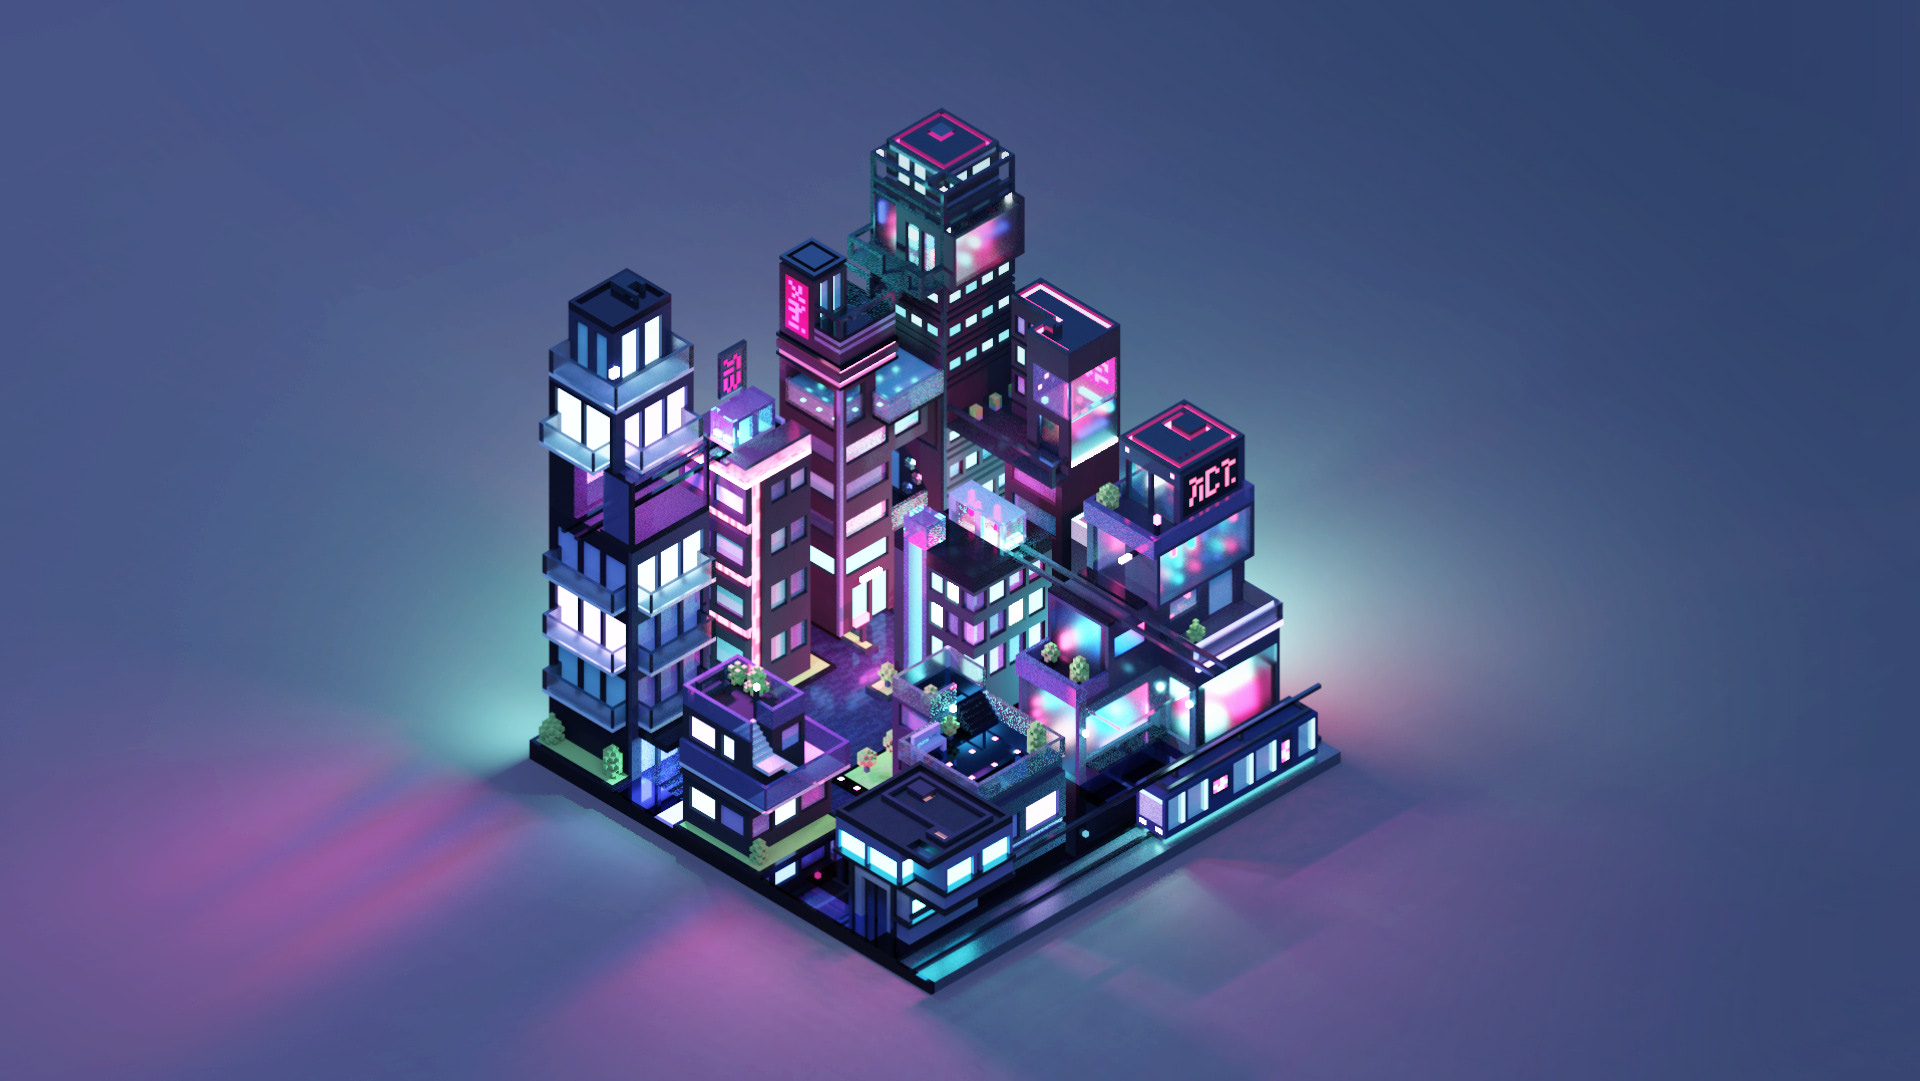 3D isometric city by night by Meg Wehrlen showing a square based city of high rise building with a synthwave/vapowave feel.